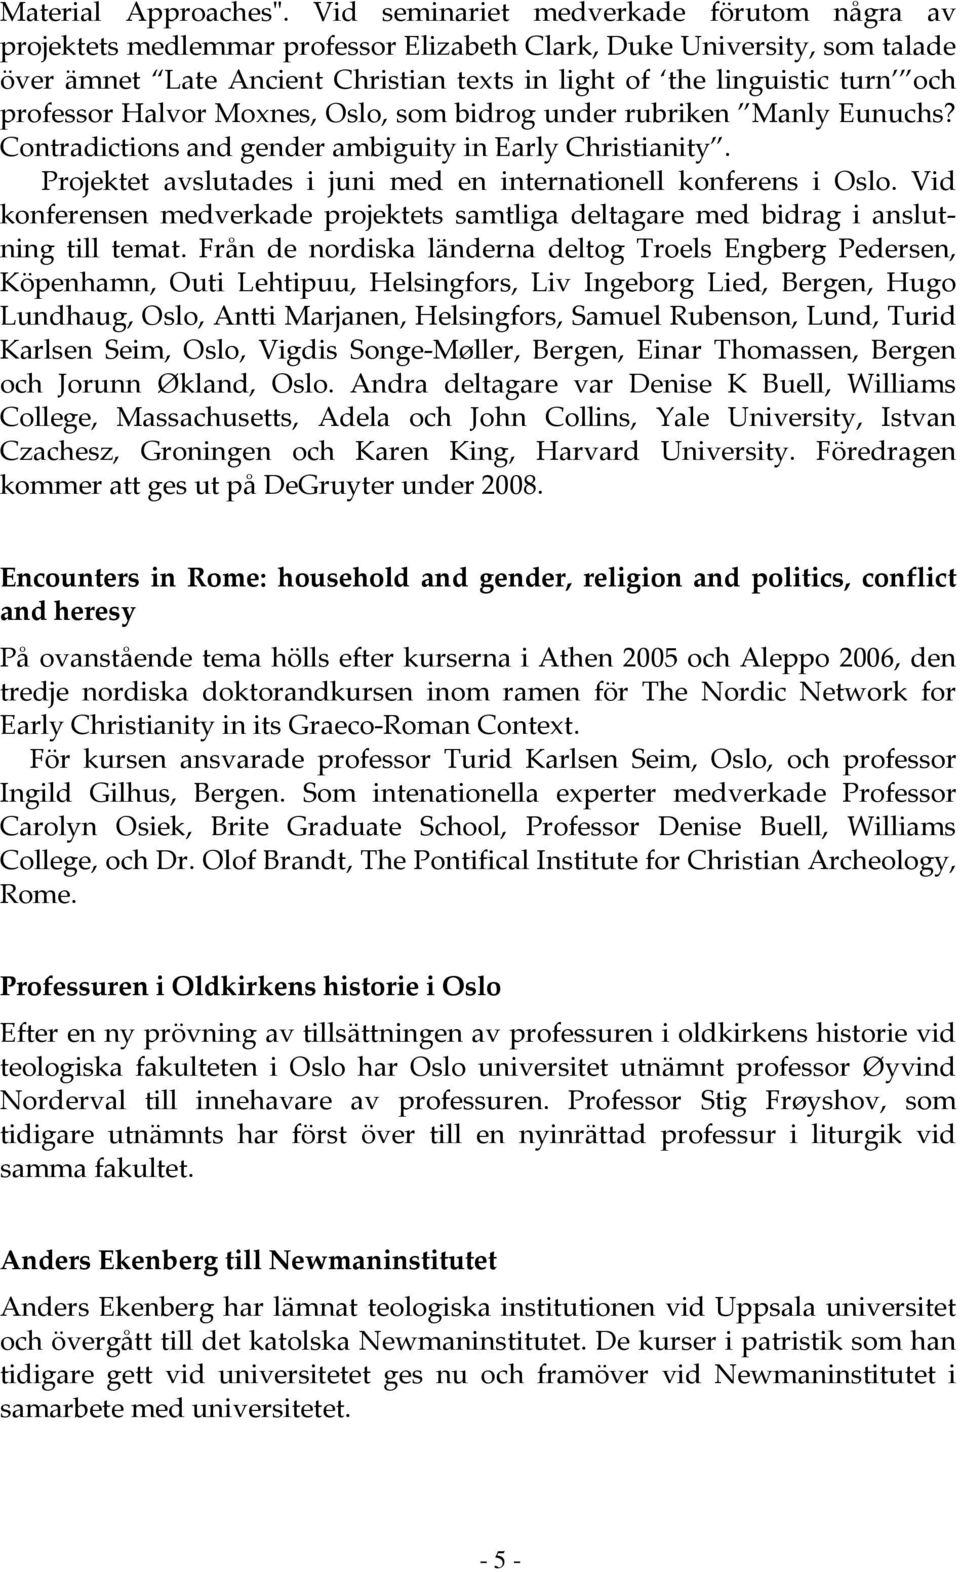 professor Halvor Moxnes, Oslo, som bidrog under rubriken Manly Eunuchs? Contradictions and gender ambiguity in Early Christianity. Projektet avslutades i juni med en internationell konferens i Oslo.